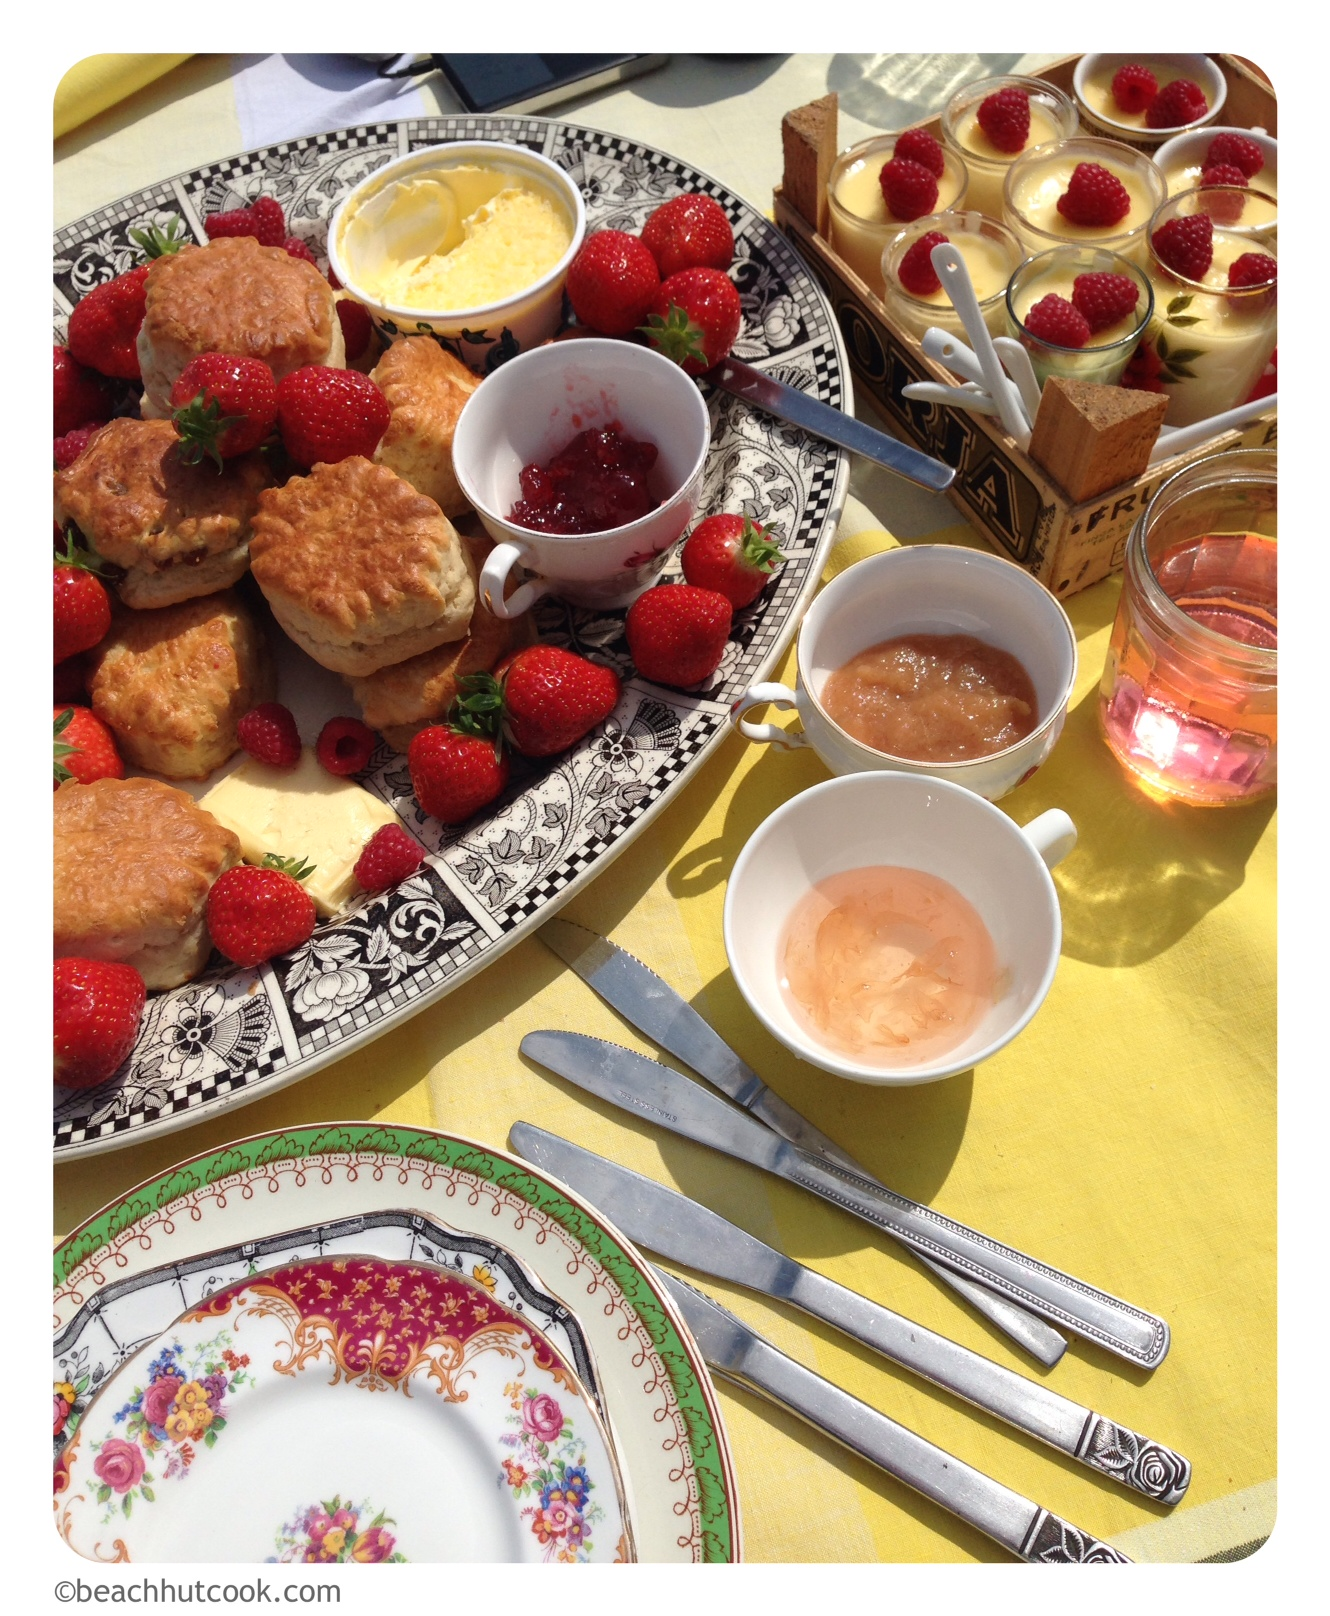 Beachhutcook's Vintage Afternoon Tea on the Beach